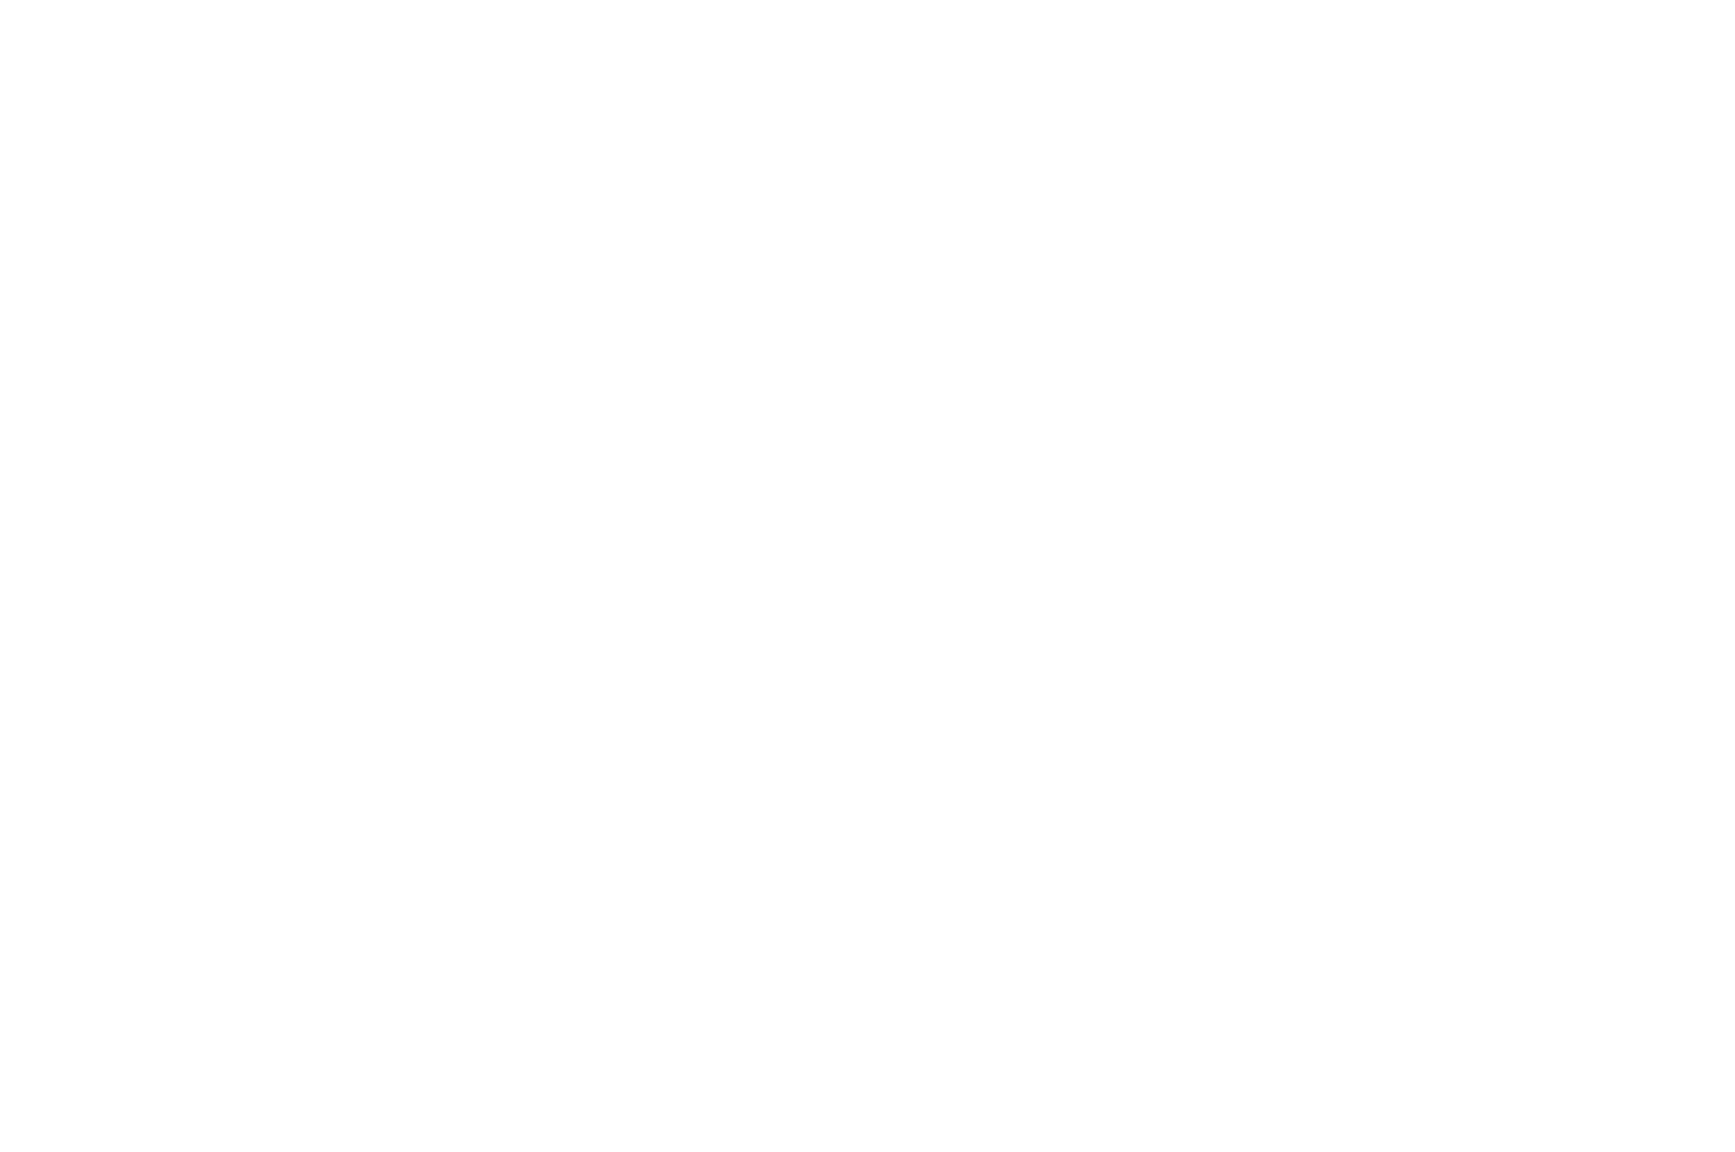 OFFICIAL SELECTION - Cinema City International Film Festival Screenplay Competition